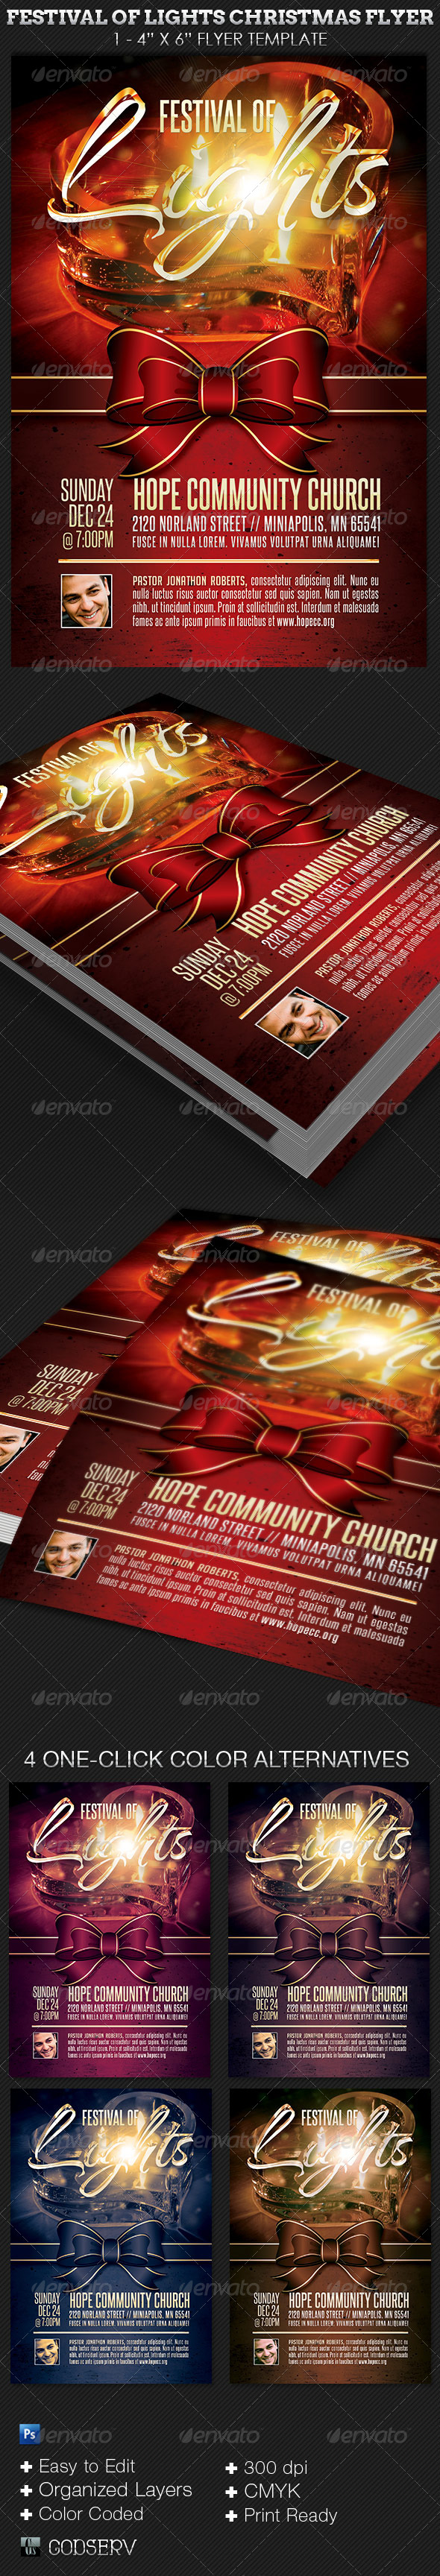 GraphicRiver Festival of Lights Christmas Flyer Template 6361843